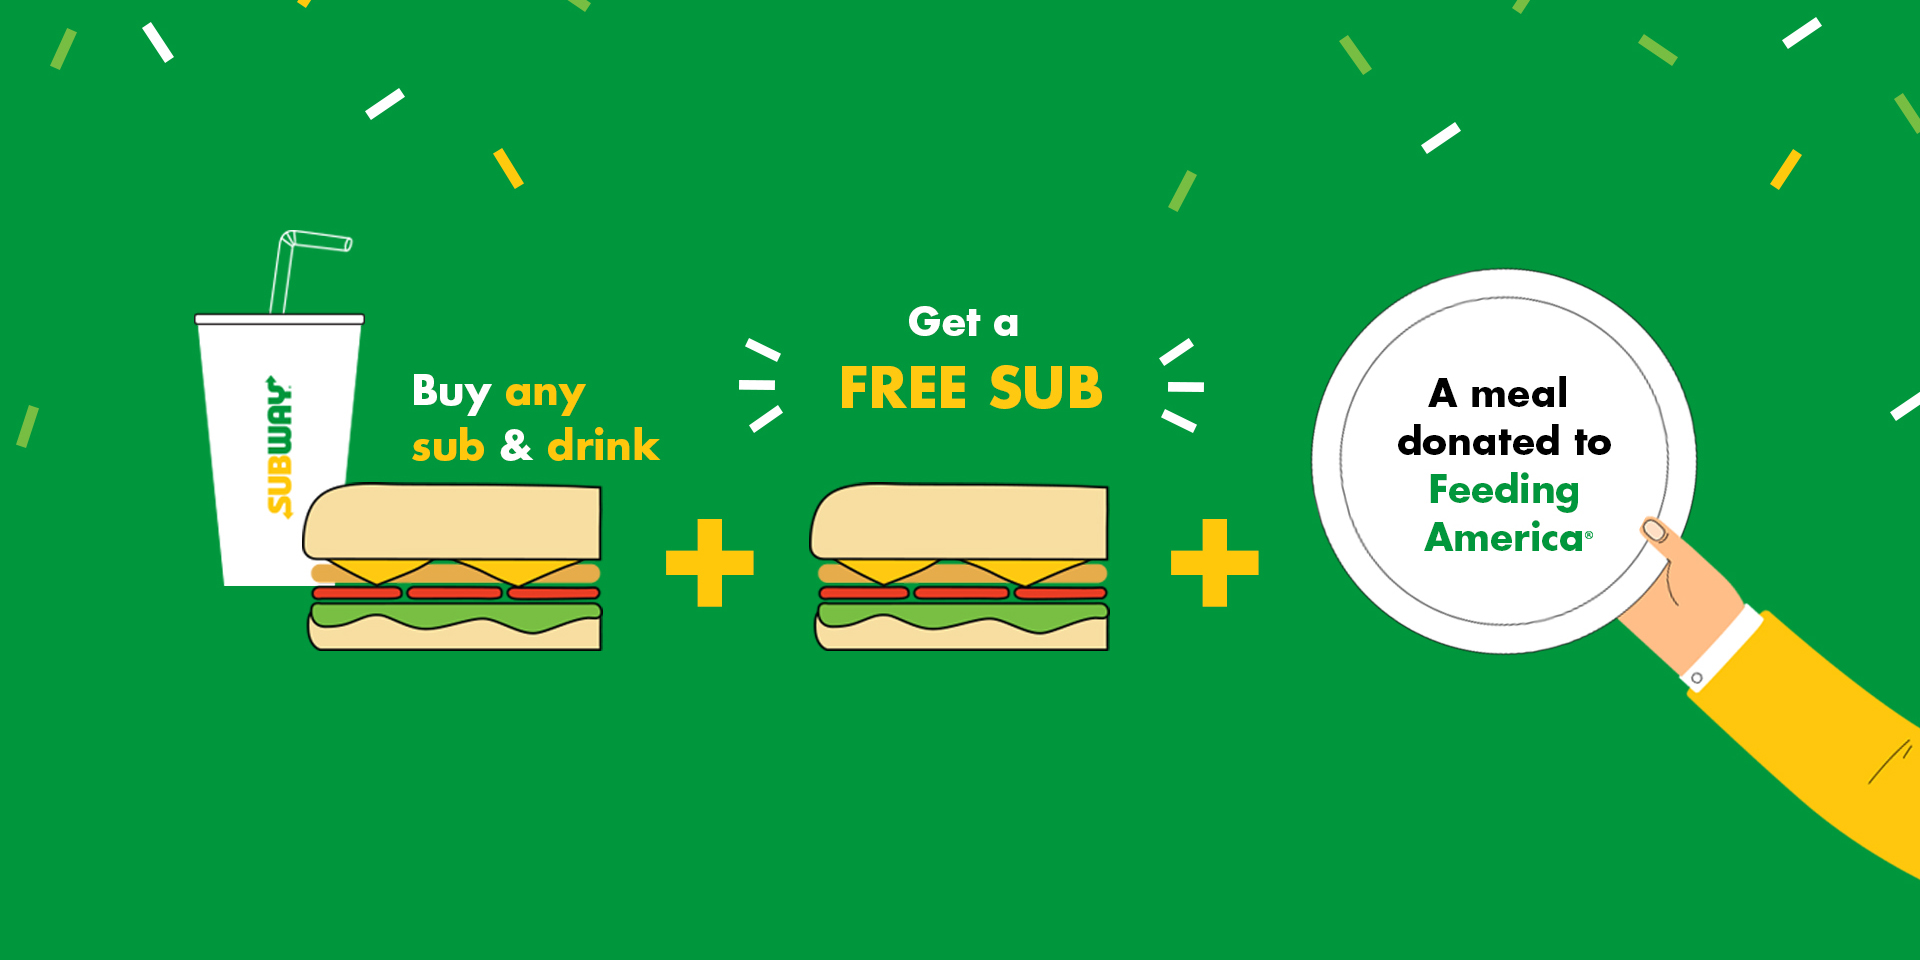 First Ameal National Sandwich Subway Is Offering Bogo Subs National Sandwich Subway Is Offering Bogo Subs Purchase National Sub Day Firehouse National Sub Day 2015 nice food National Sub Day